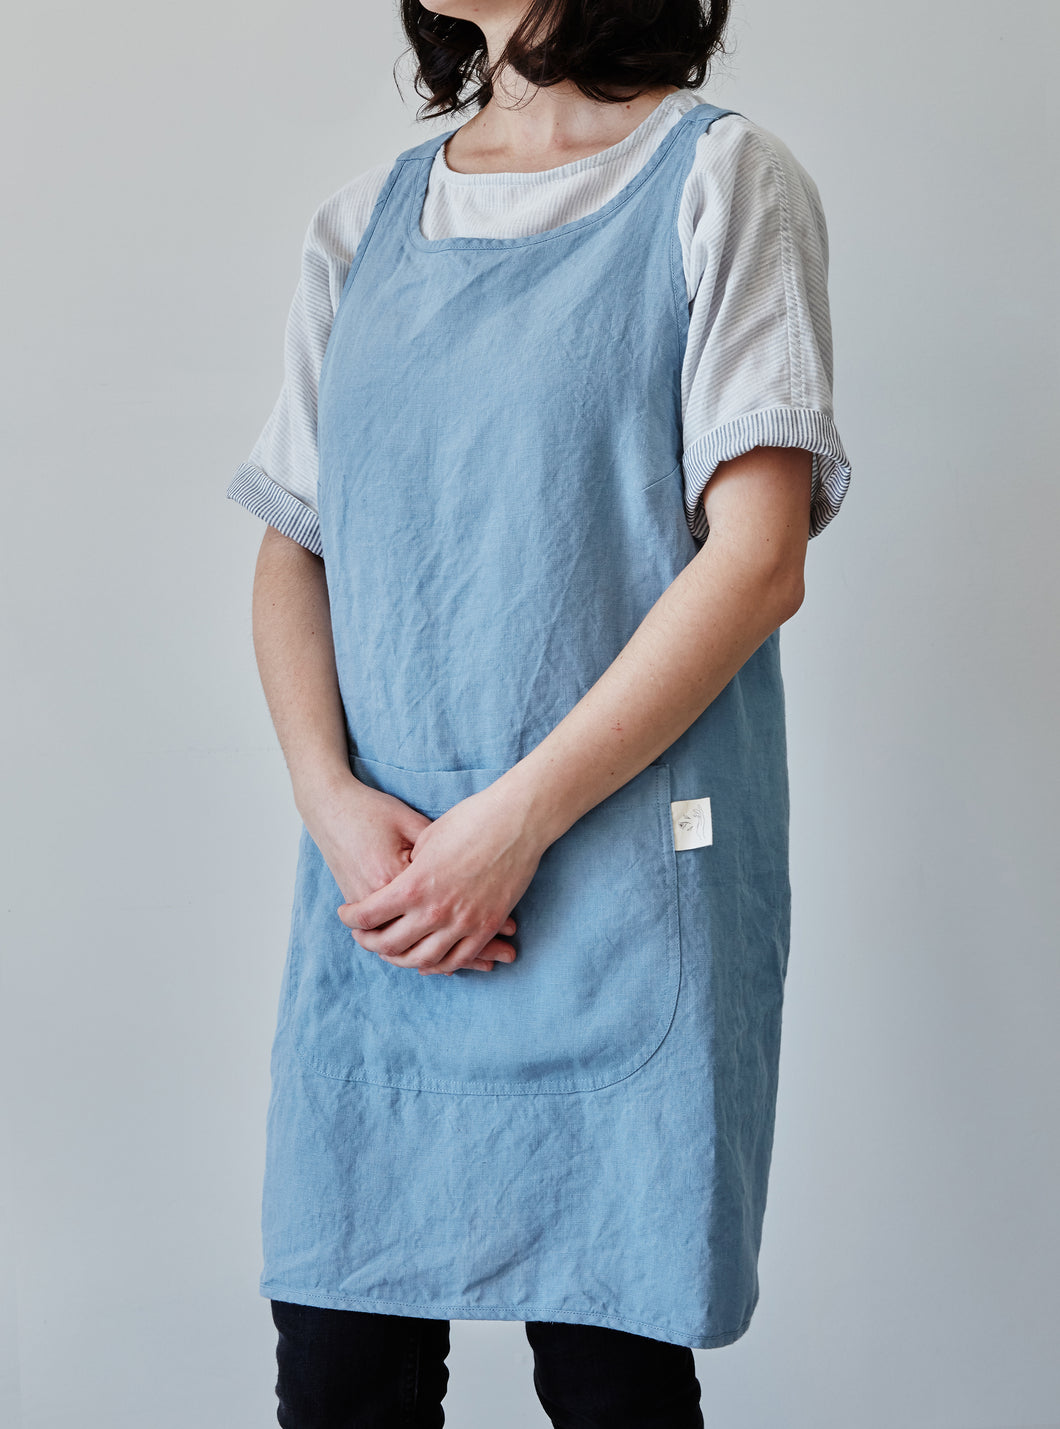 Front of our blue linen apron with large pocket